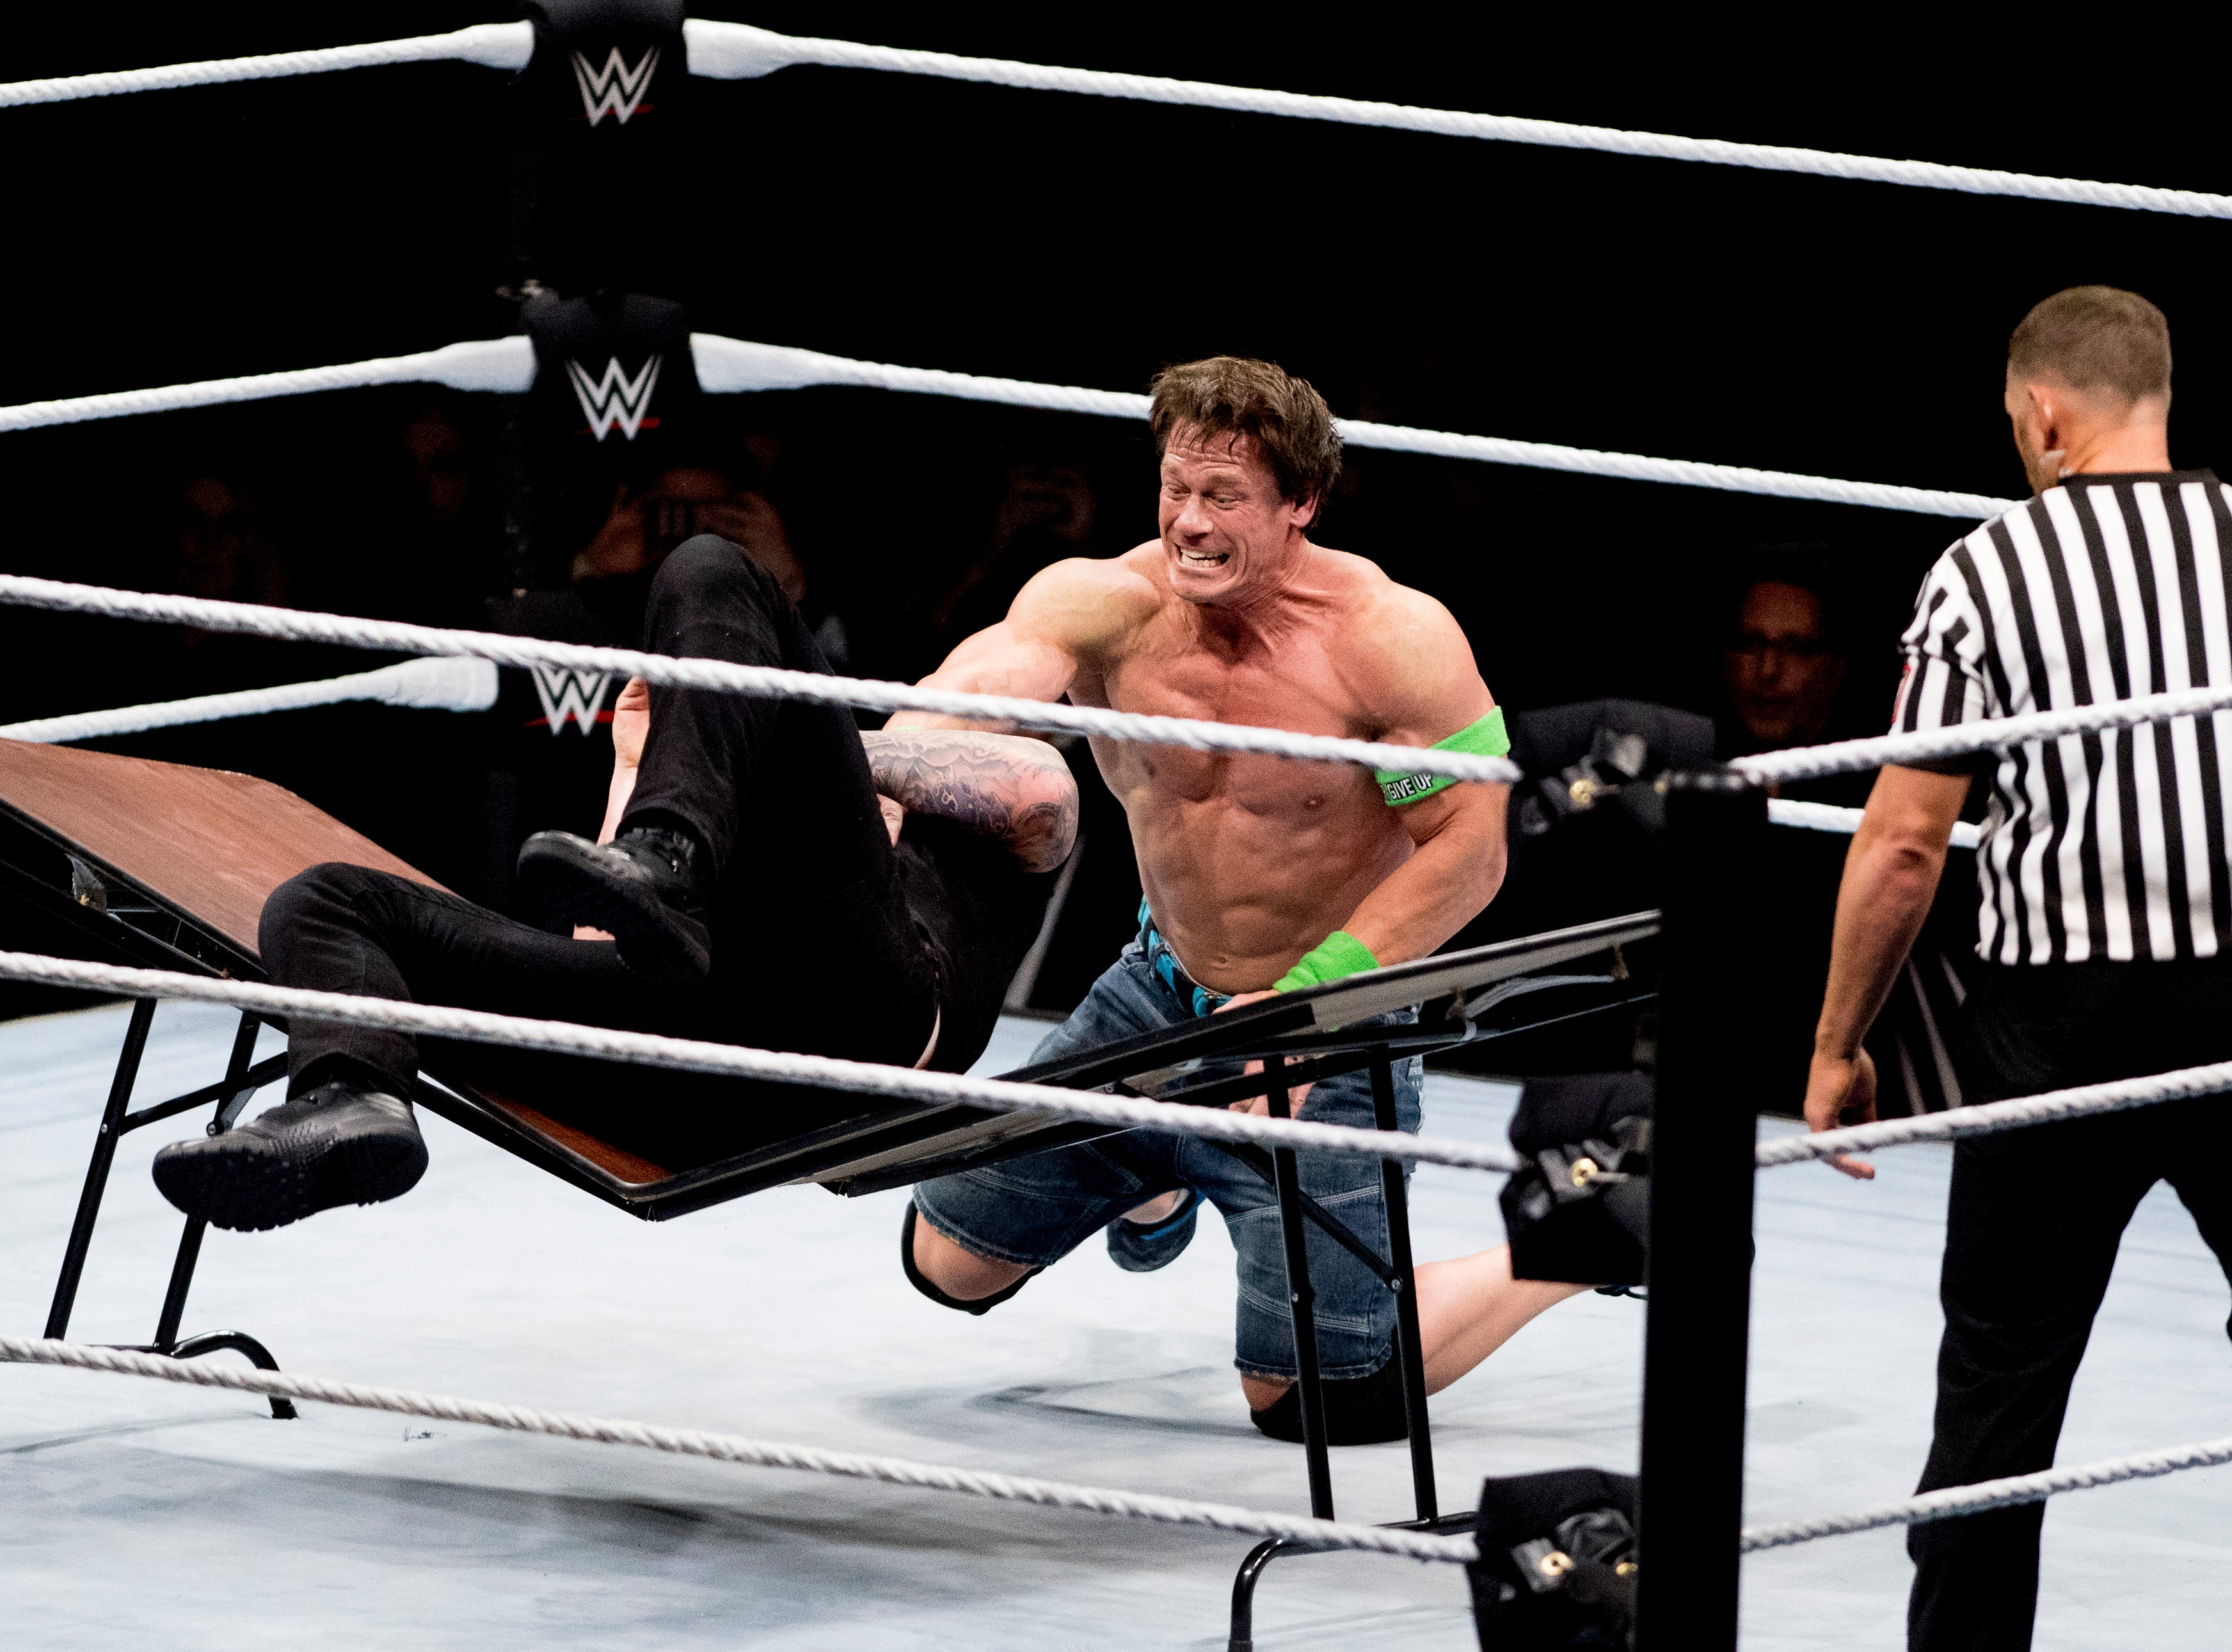 John Cena body slams Baron Corbin into a table to win the match during a WWE Live performance at the Knoxville Civic Coliseum in Knoxville, Tennessee on Saturday, January 12, 2019. *KNOXVILLE NEWS SENTINEL USE ONLY*